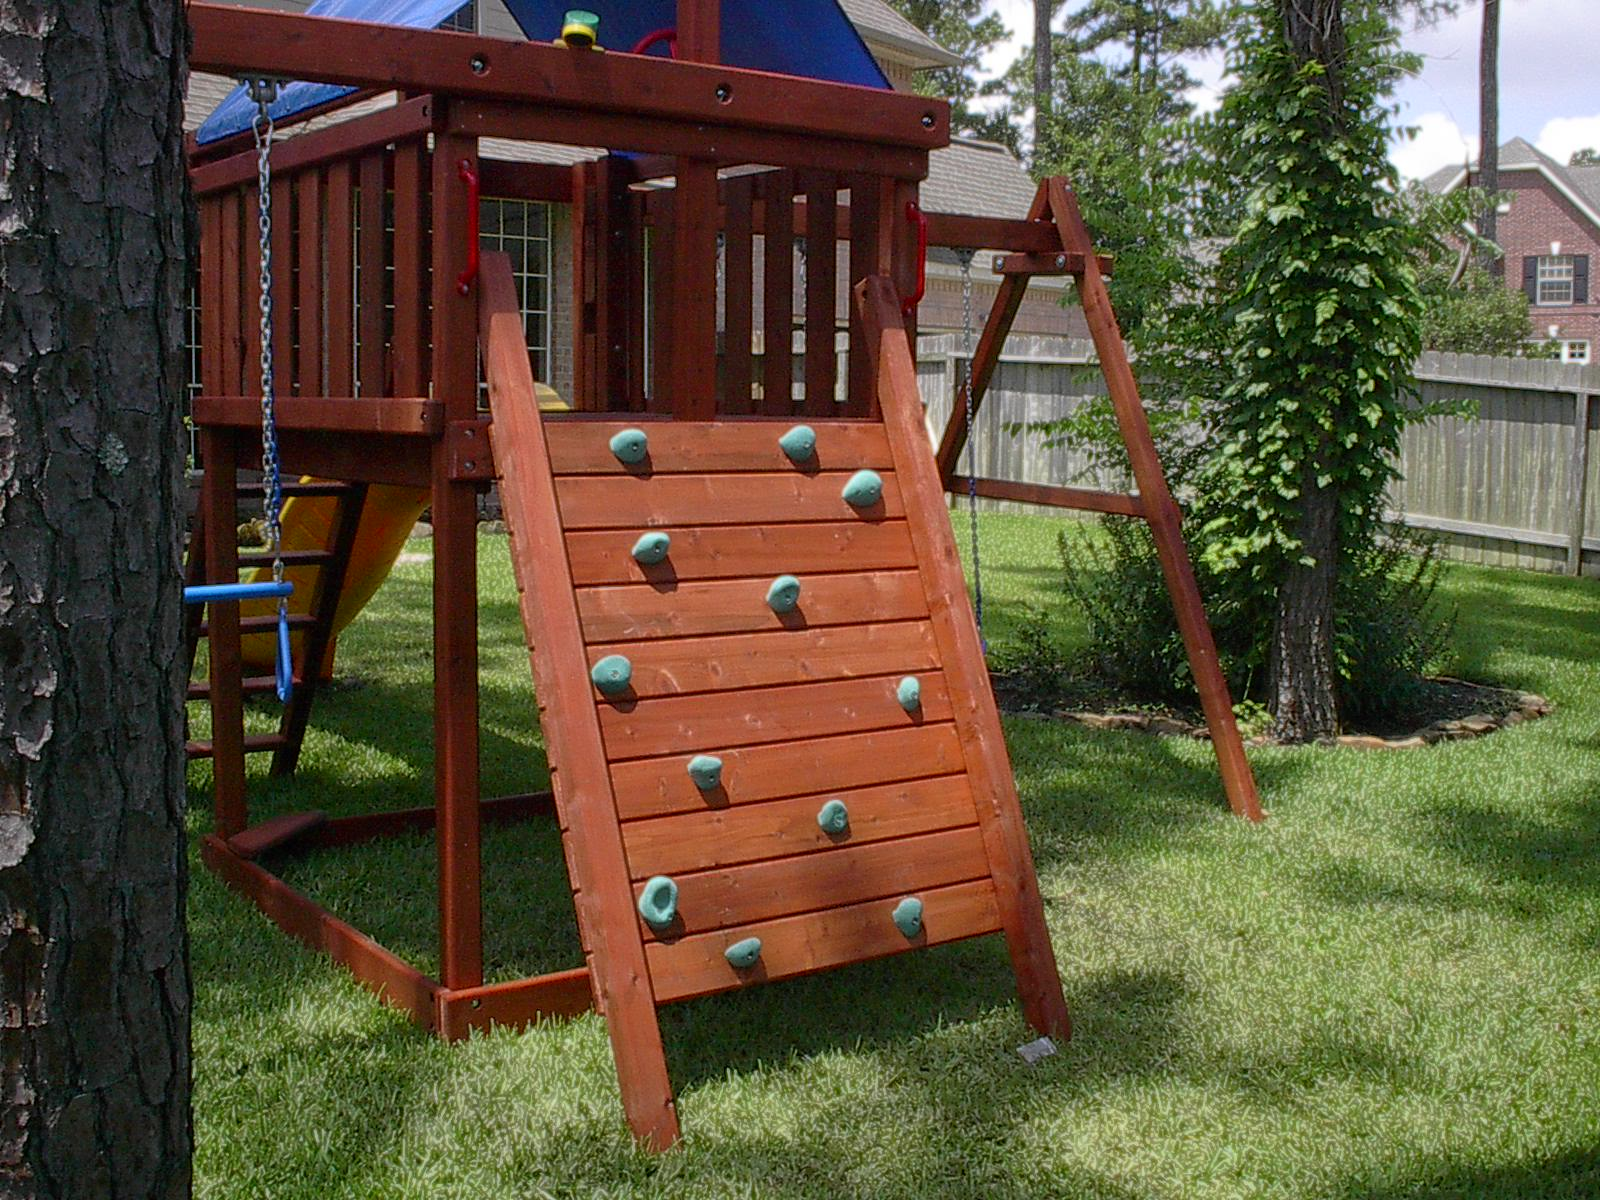 Apollo Playset Diy Wood Fort And Swingset Plans